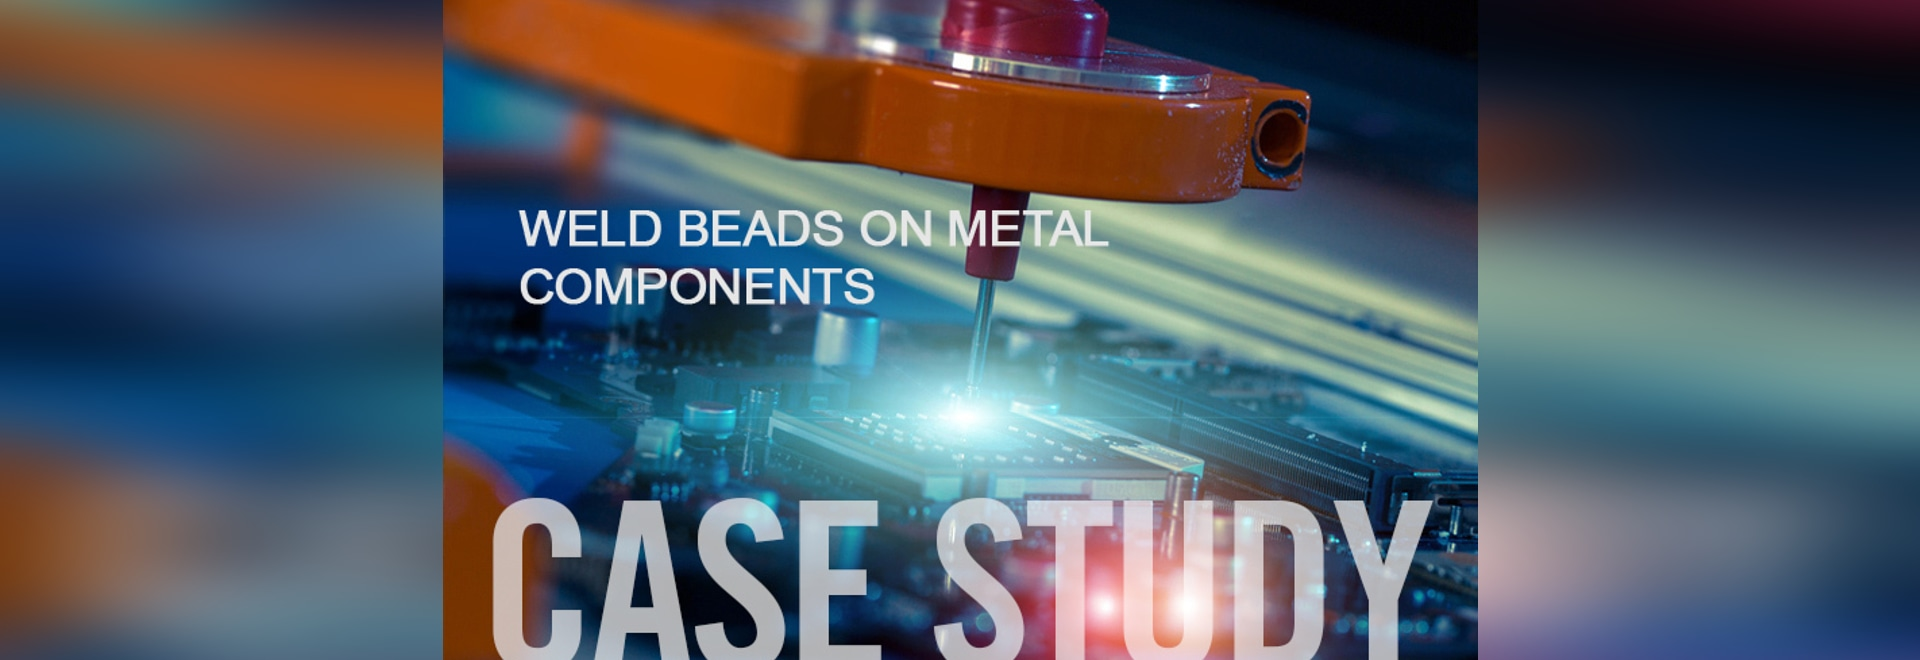 QuellTech Case Study Weld Beads on Metal Components